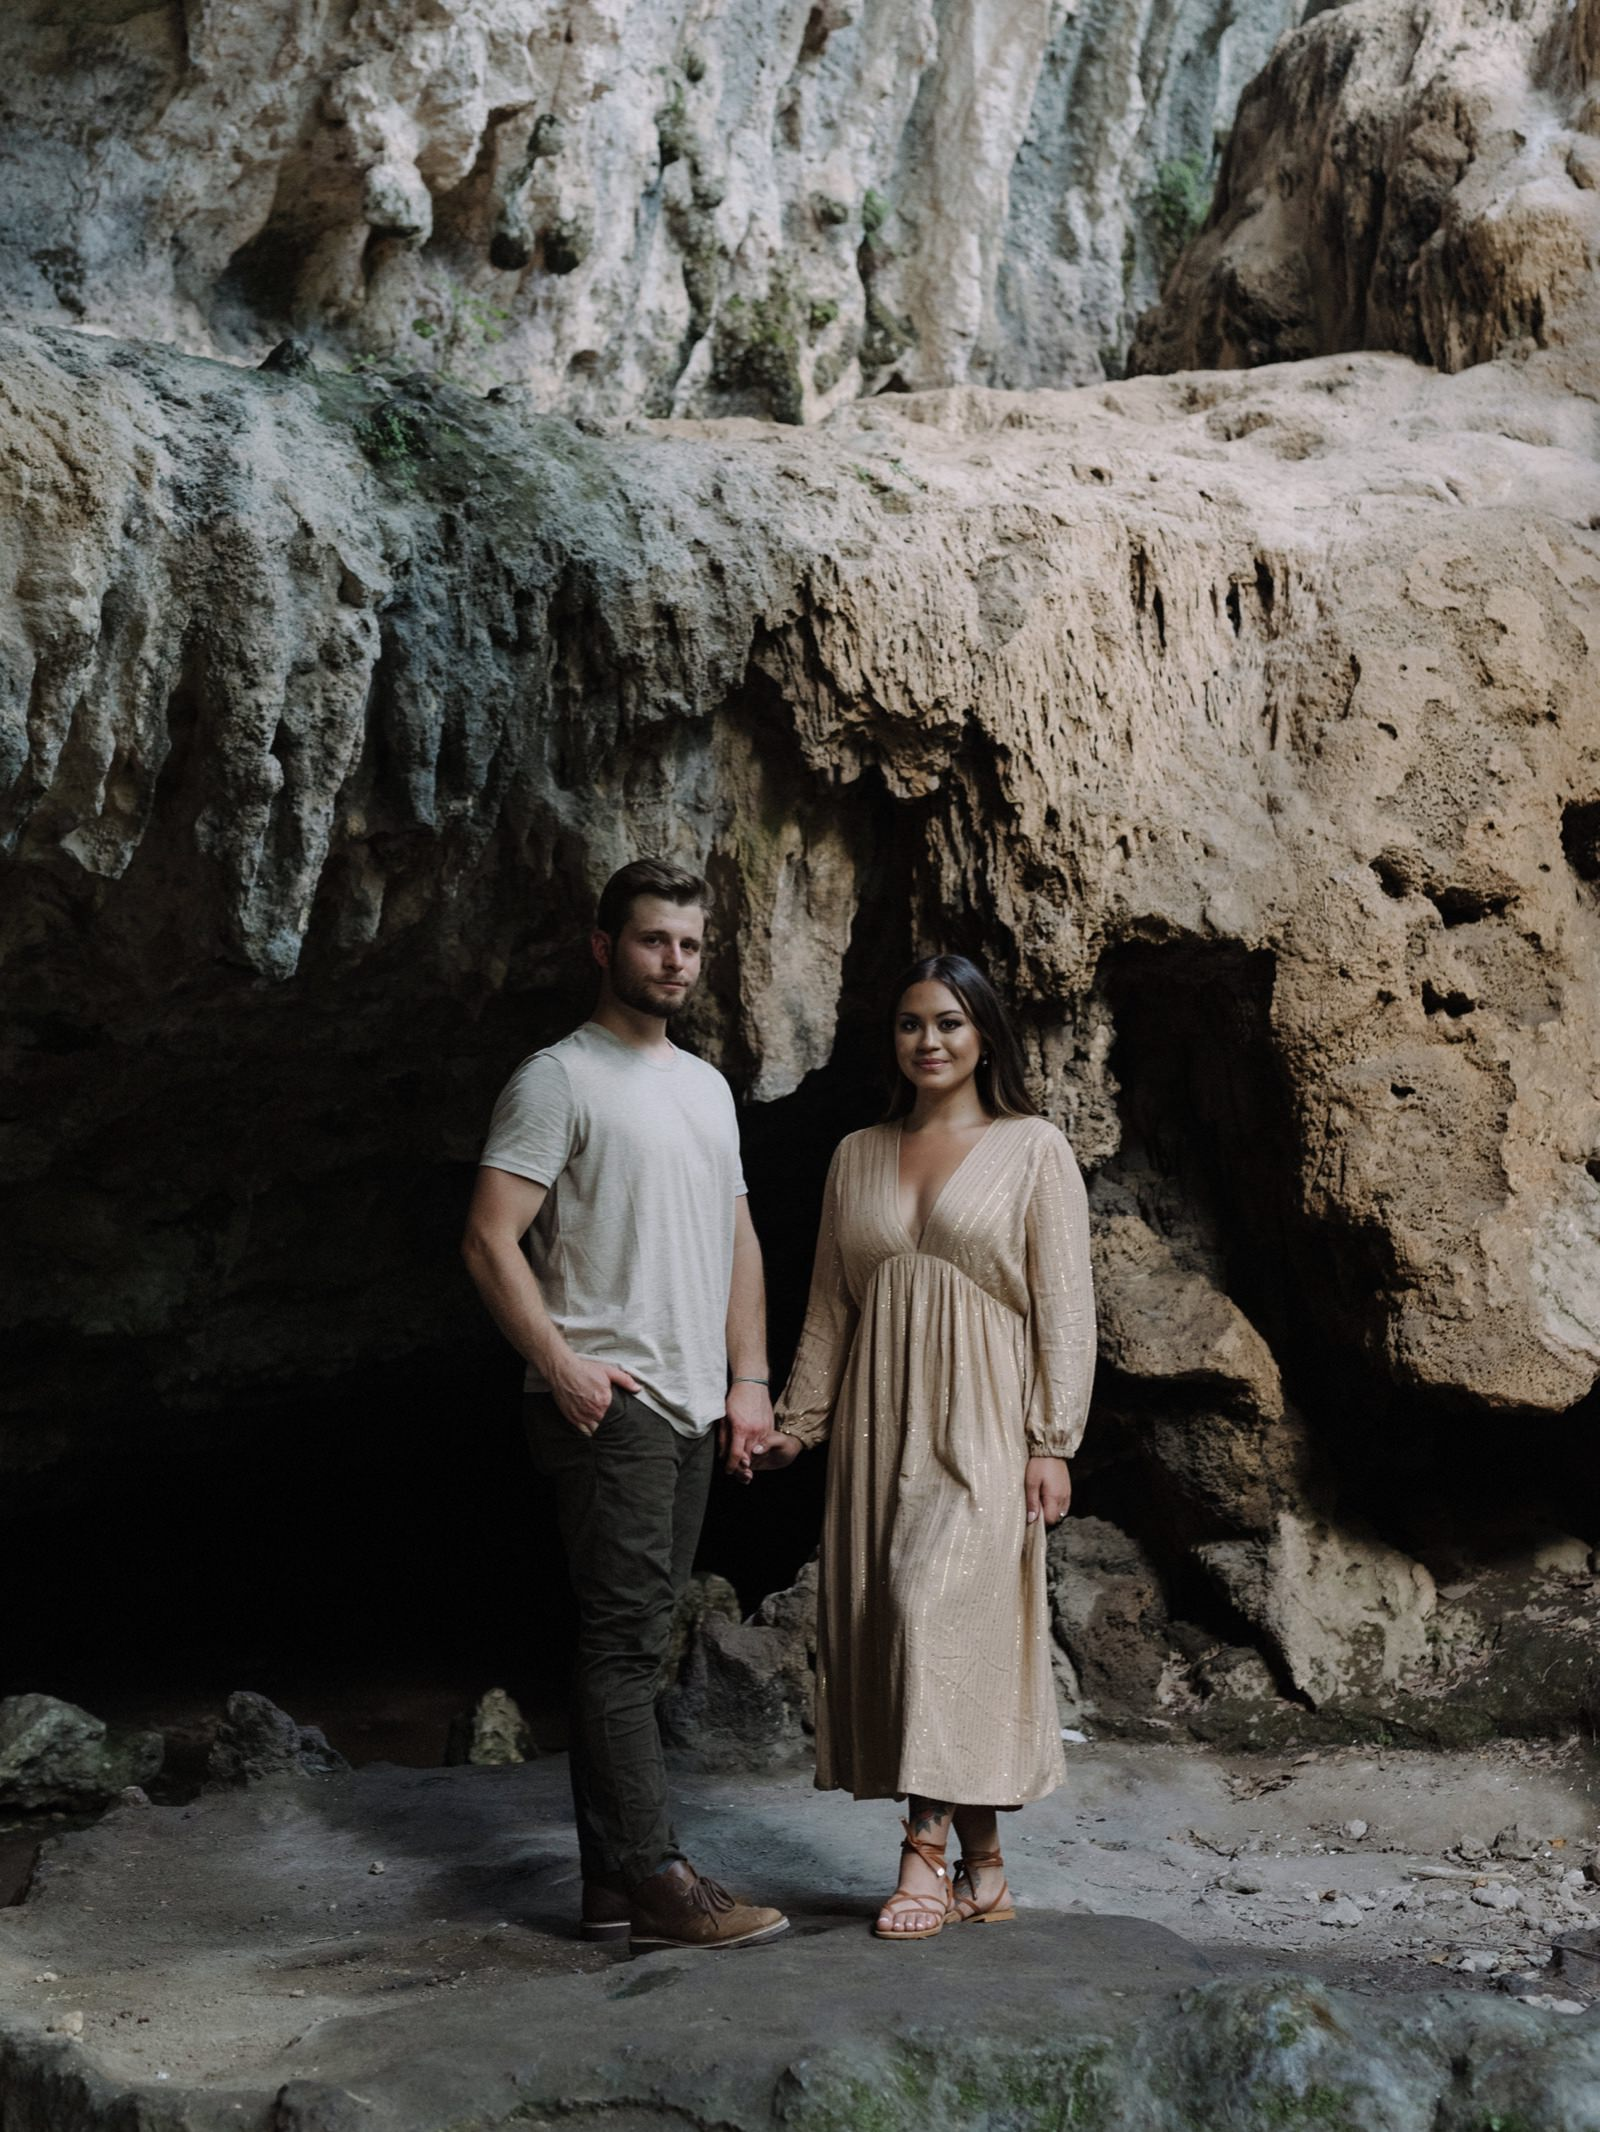 Timeless engagement session in a Hill Country canyon with him wearing casual clothes and her in a subtle beige draped dress